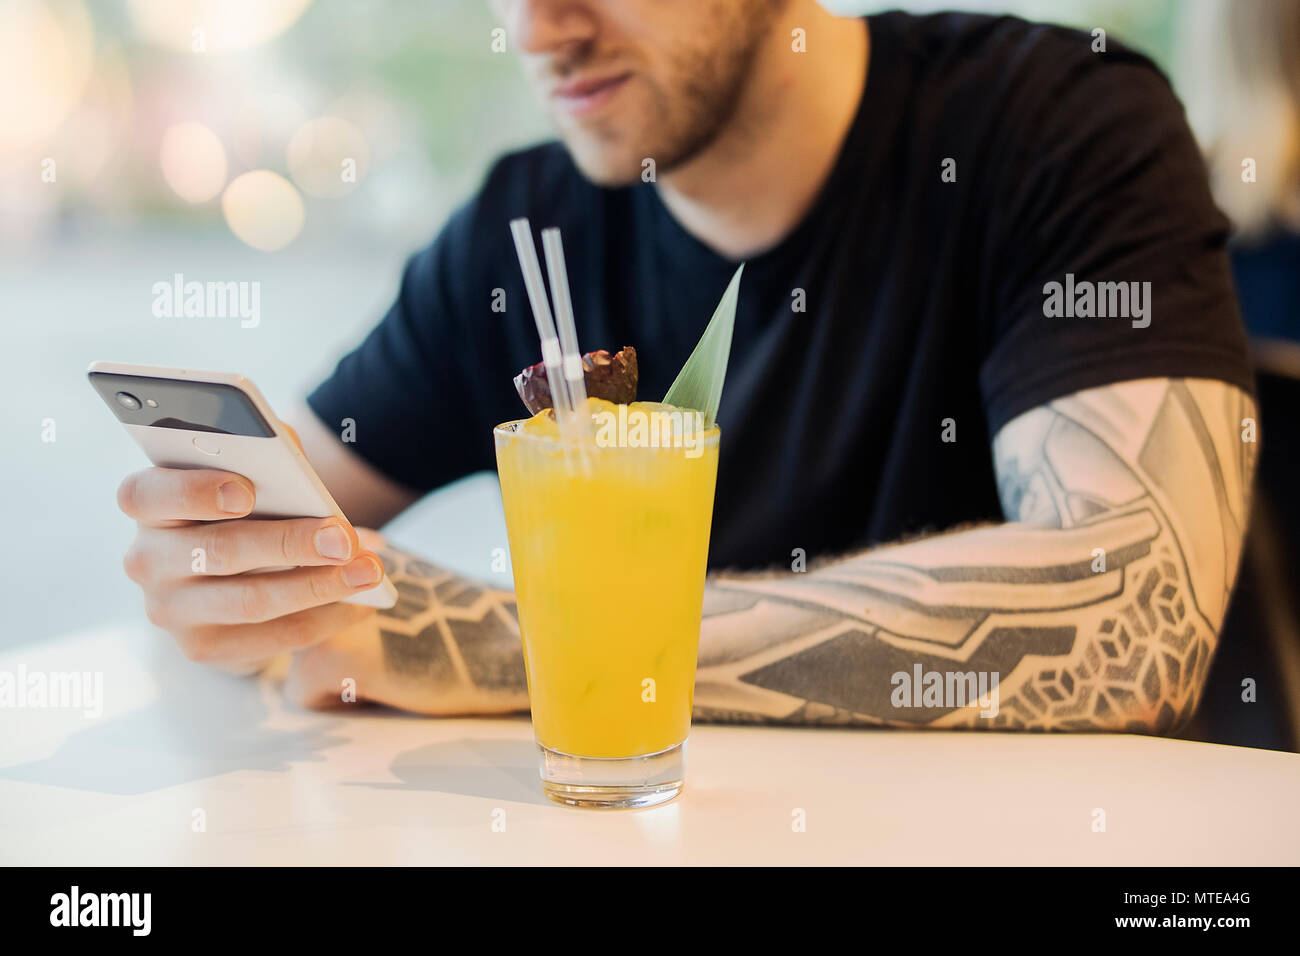 Attractive young man is holding mobile phone and drinking lemonade. - Stock Image